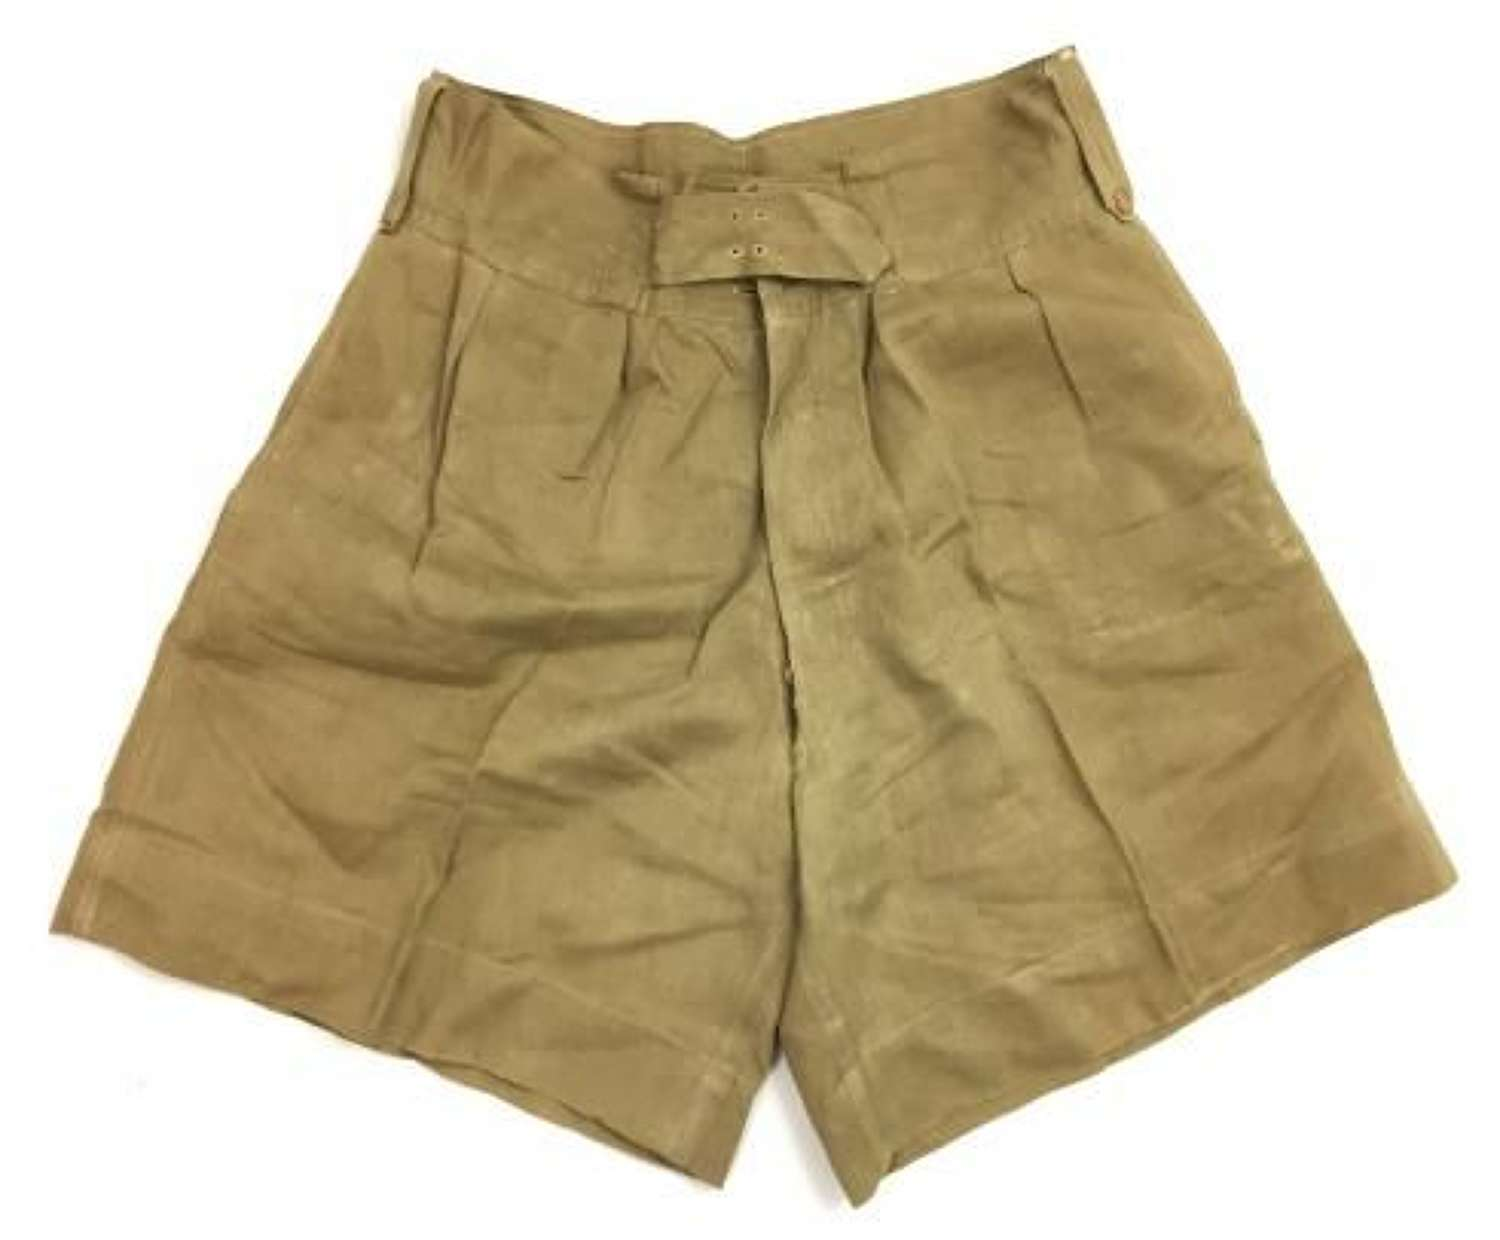 Original WW2 Period British Khaki Drill Shorts - 36""